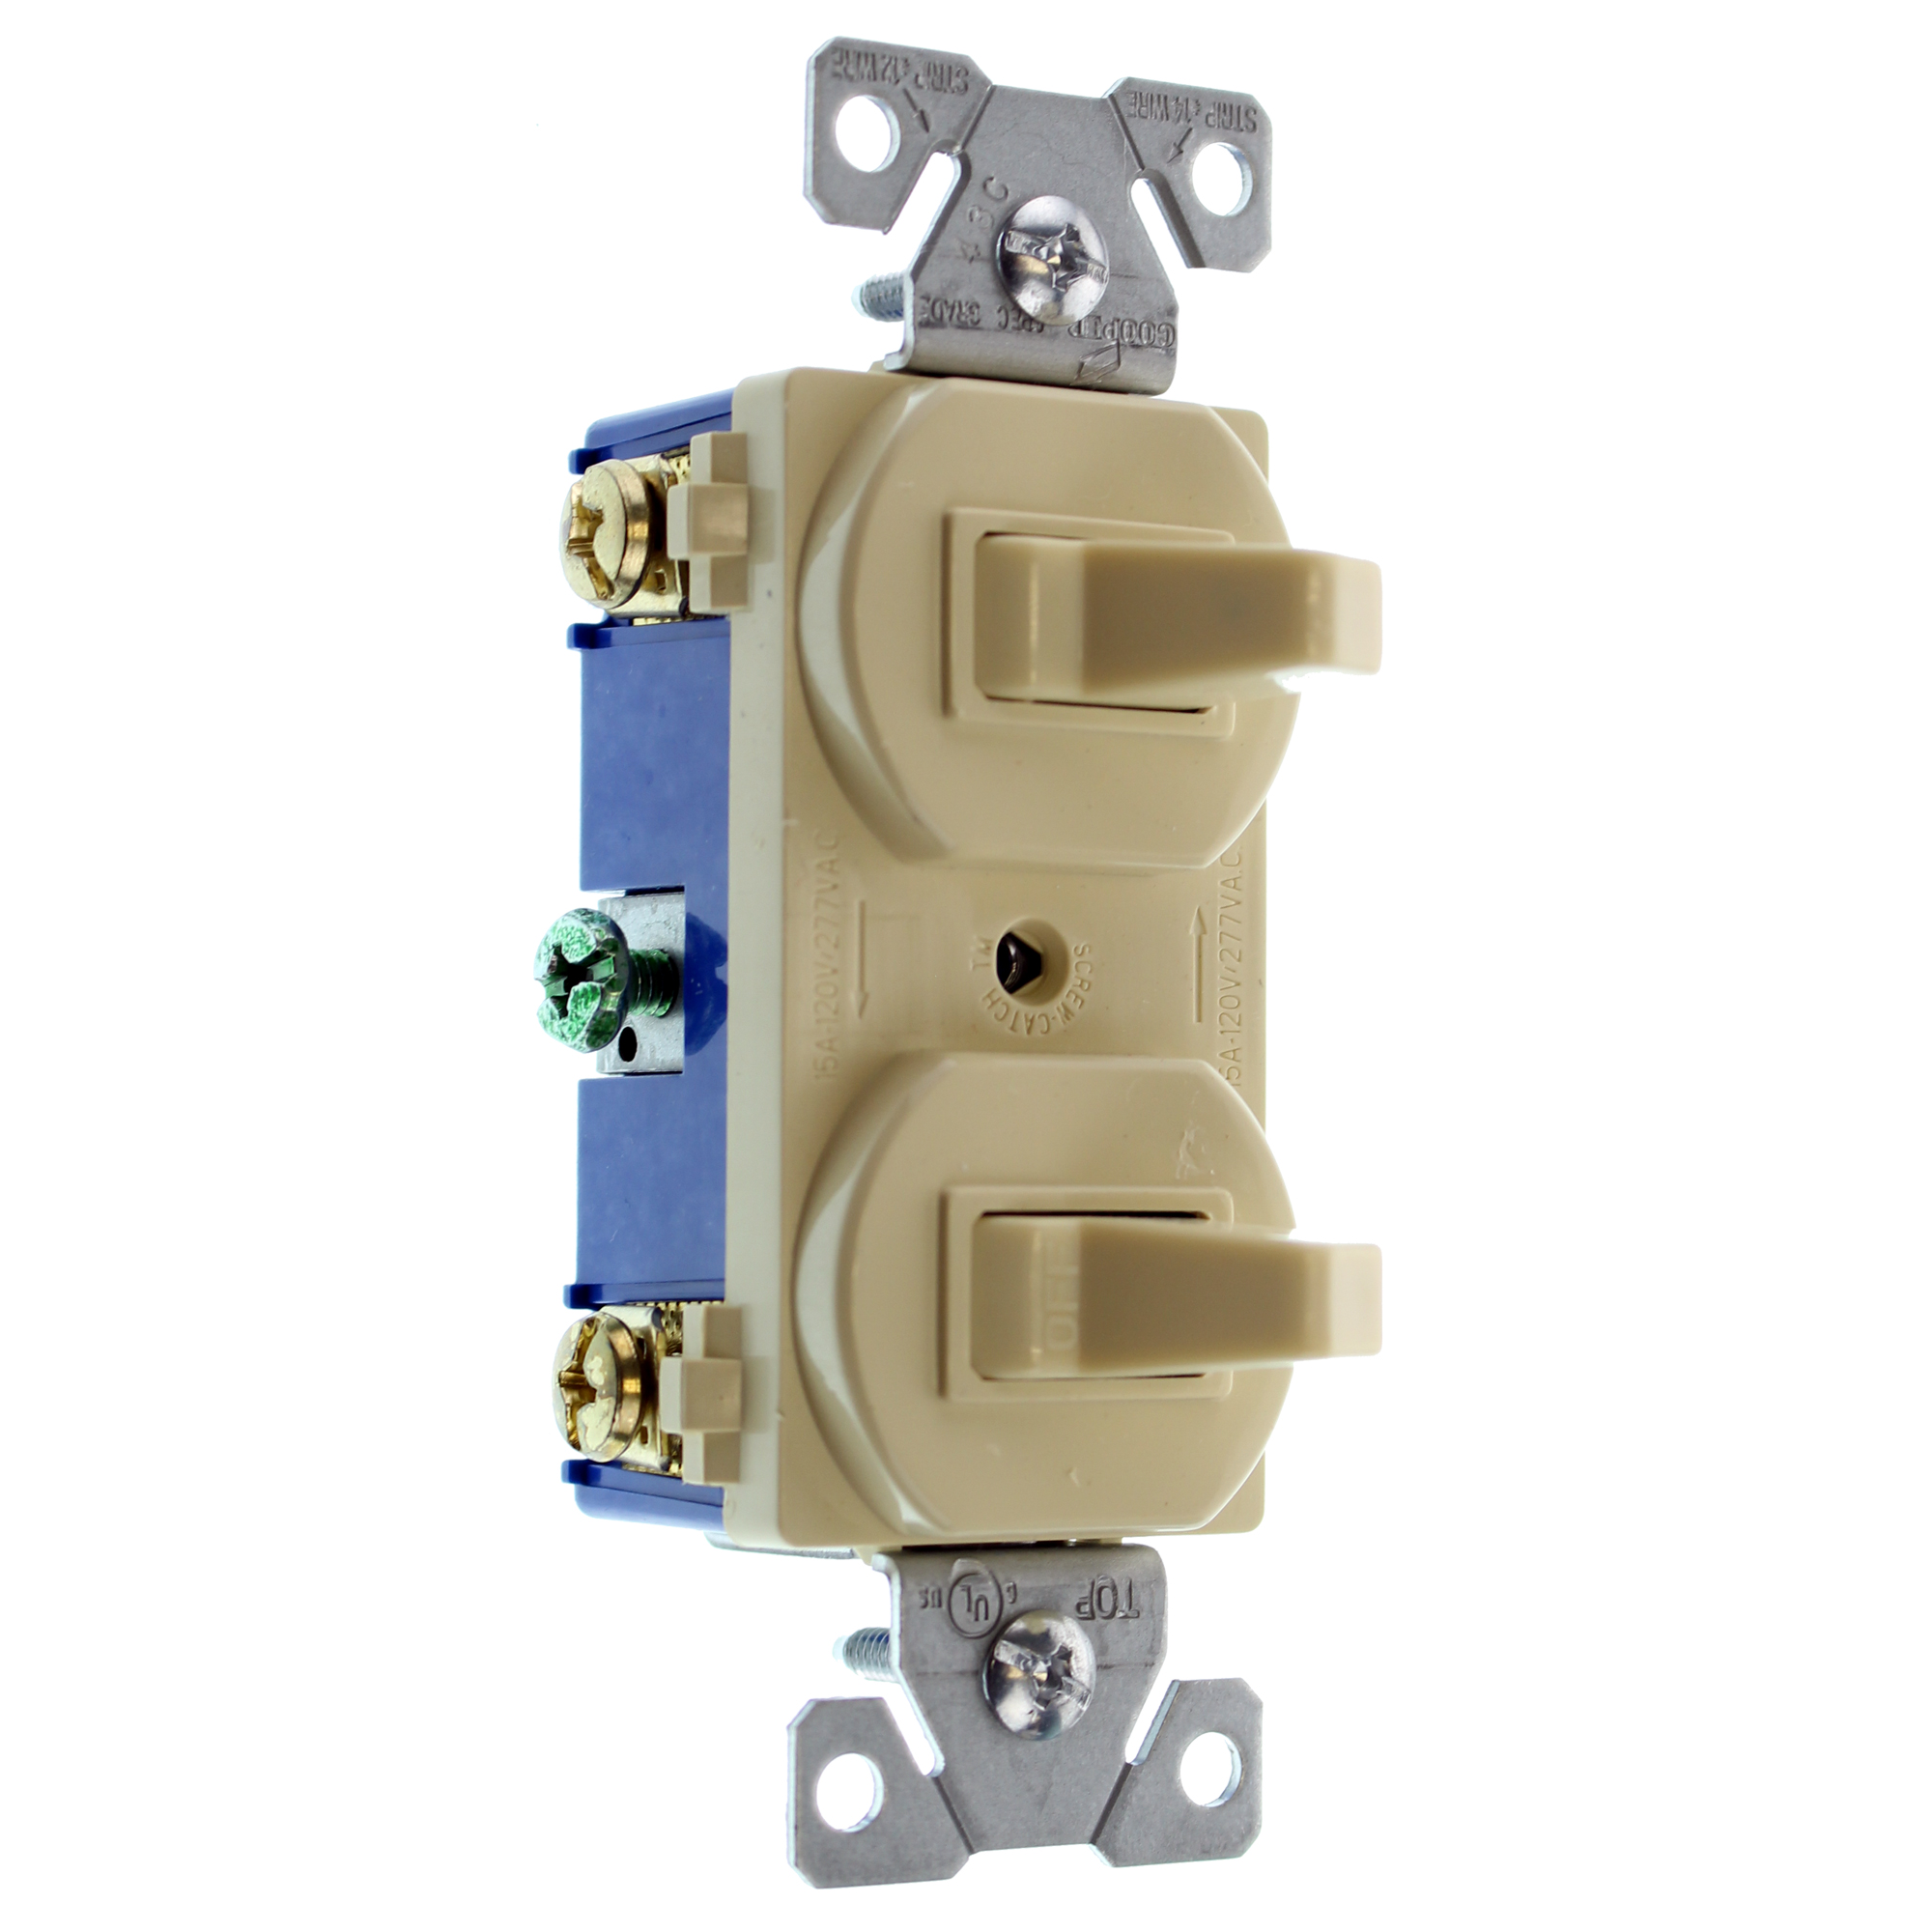 Details about HUBBELL RC103IZ DOUBLE TOGGLE SWITCH, 1-POLE & 3-WAY, on leviton 3 way switch, pass & seymour 3 way switch, bridgeport 3 way switch, eagle 3 way switch, lutron 3 way switch, changing 3-way light switch, cooper 3 way switch, legrand 3 way switch,